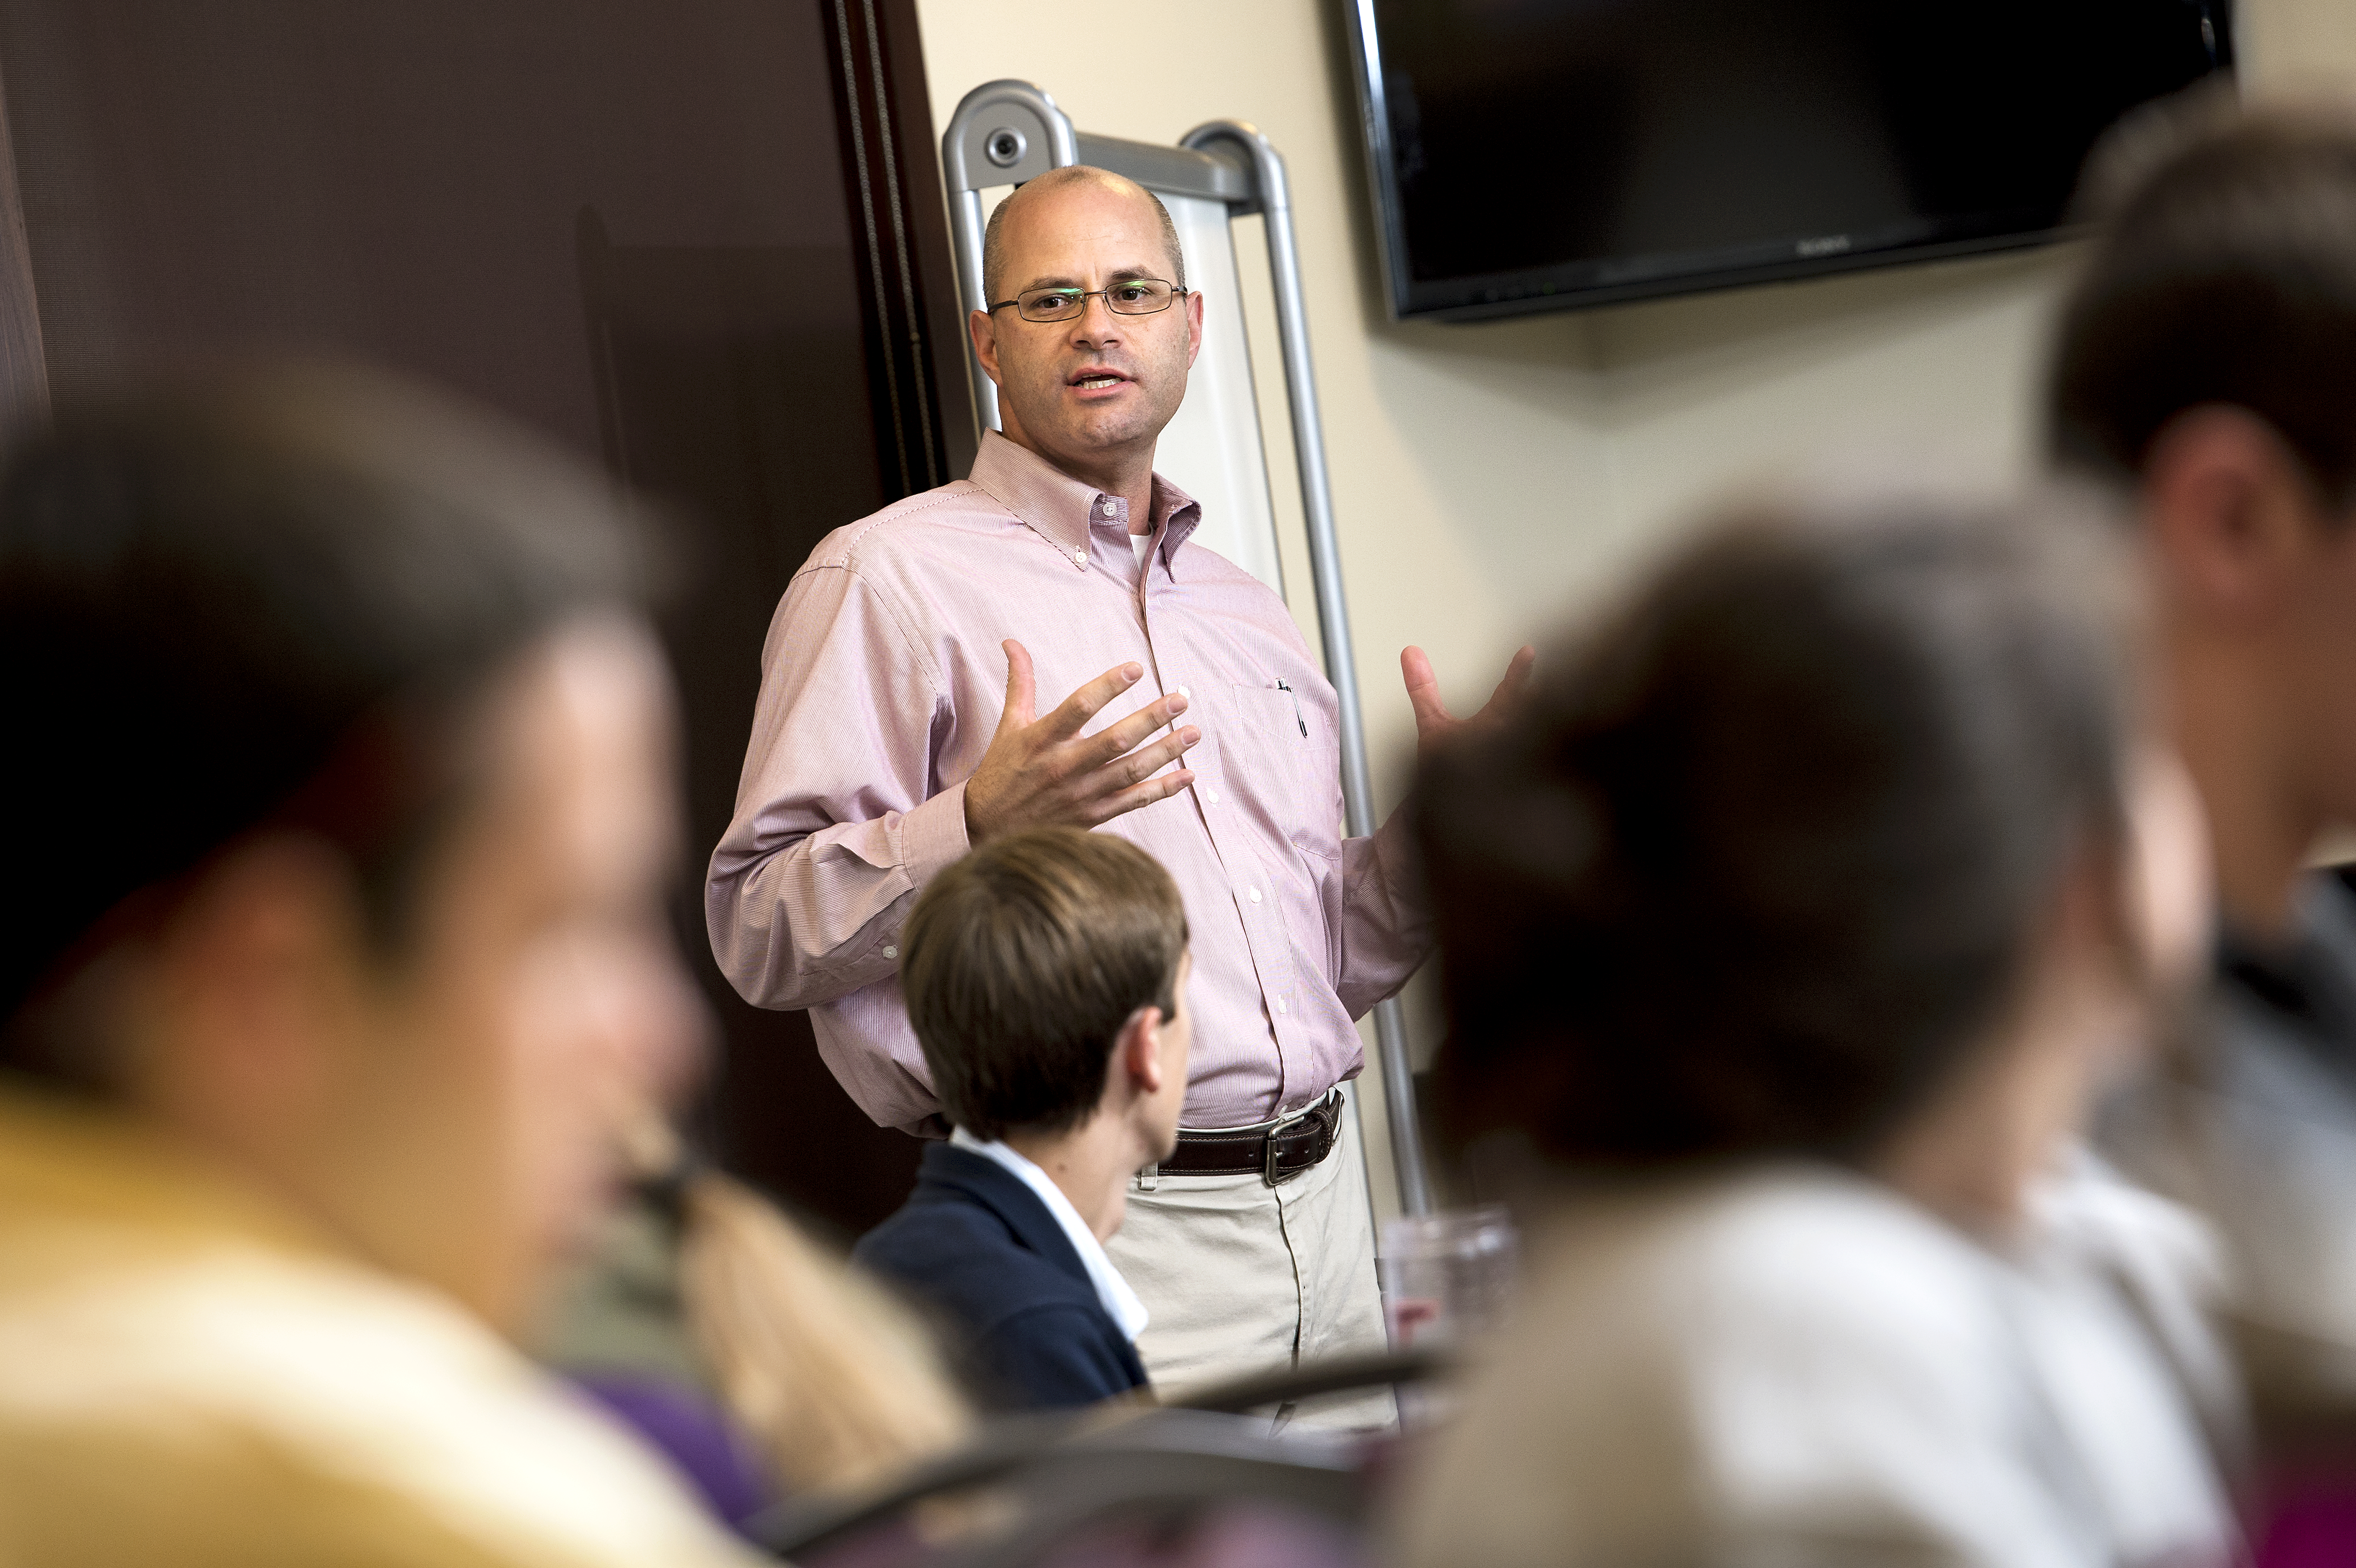 Marc Junkunc, who is faculty director of Virginia Tech's Innovate program, seeks to impart some key lessons on entrepreneurship in his classes.